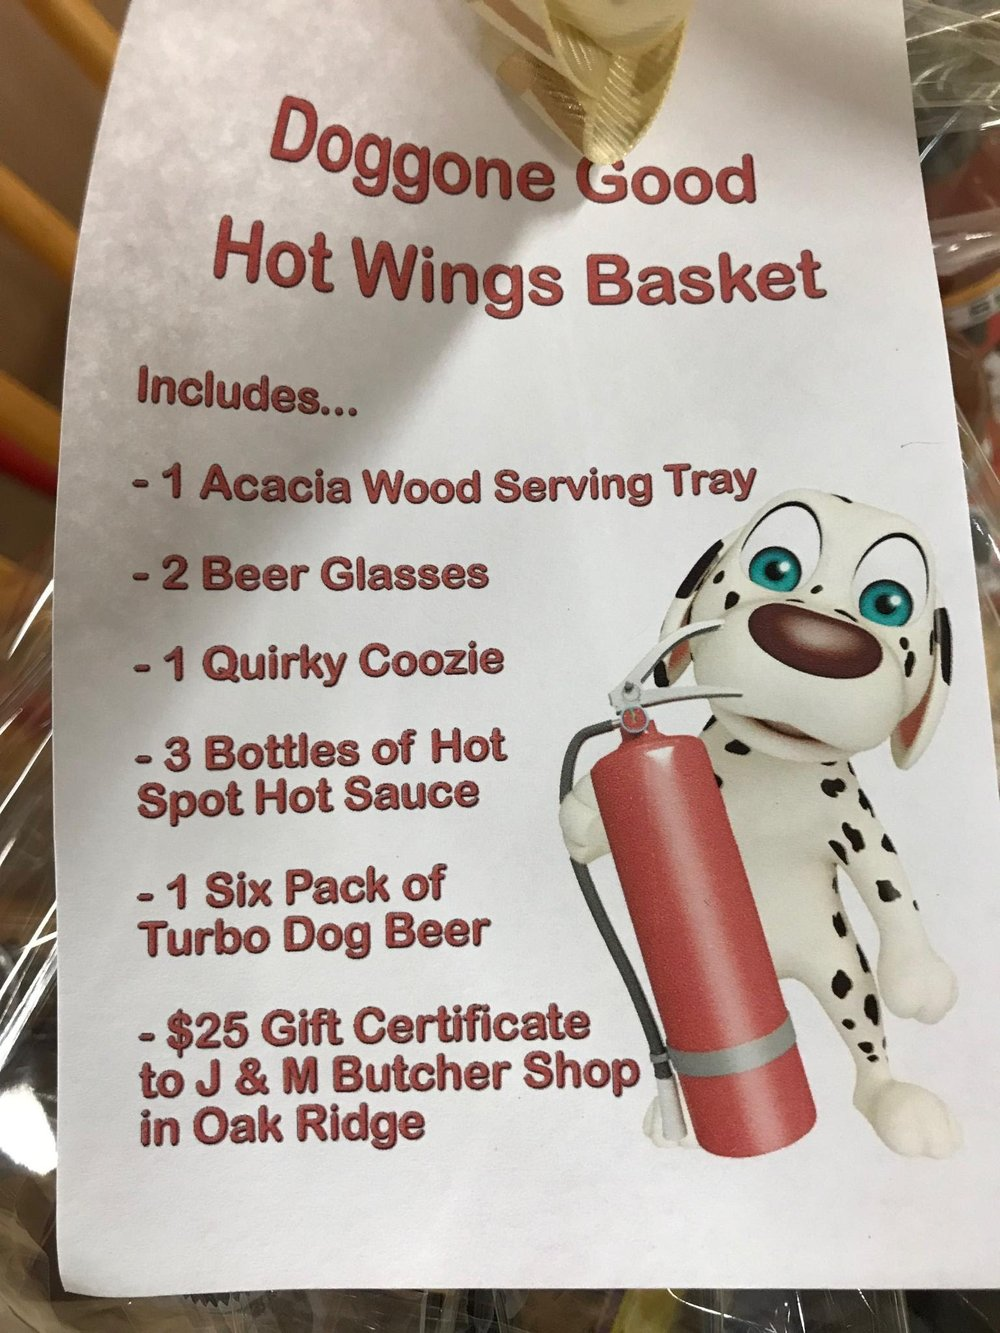 Doggone Good Hot Wings Basket